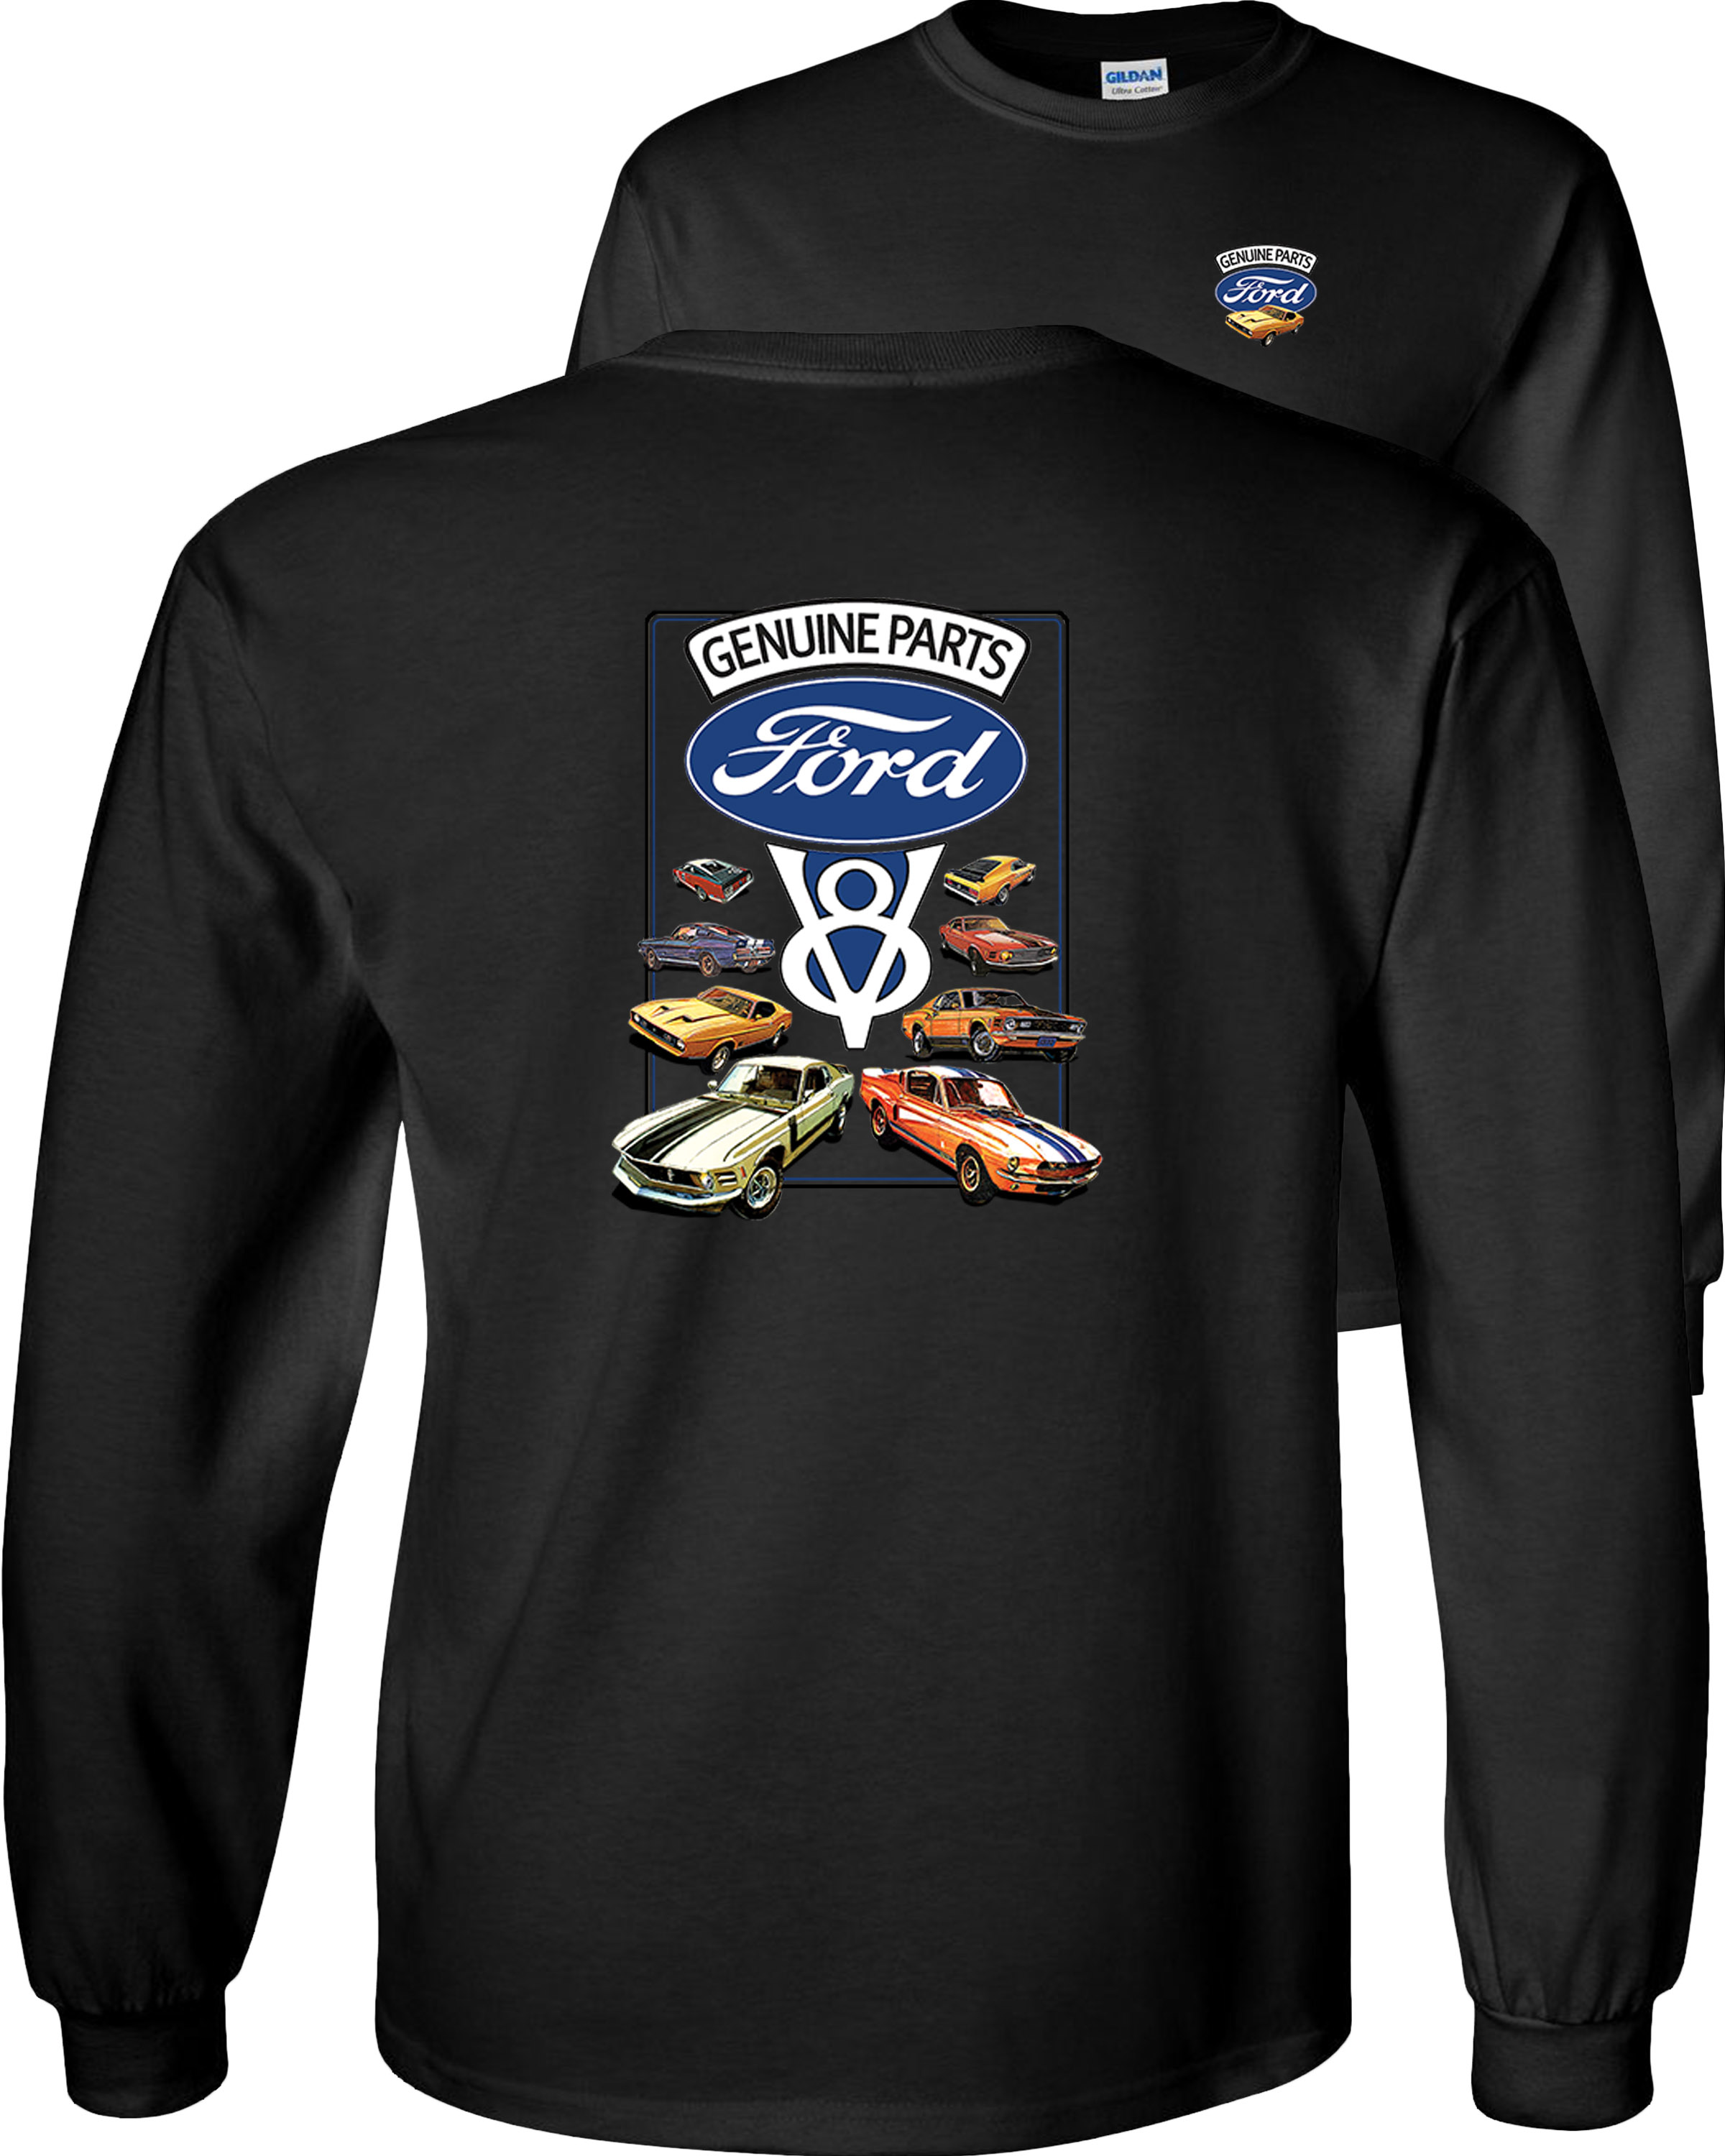 The Electric Company TV Show ELECTRIC LIGHT Licensed Long Sleeve T-Shirt S-3XL